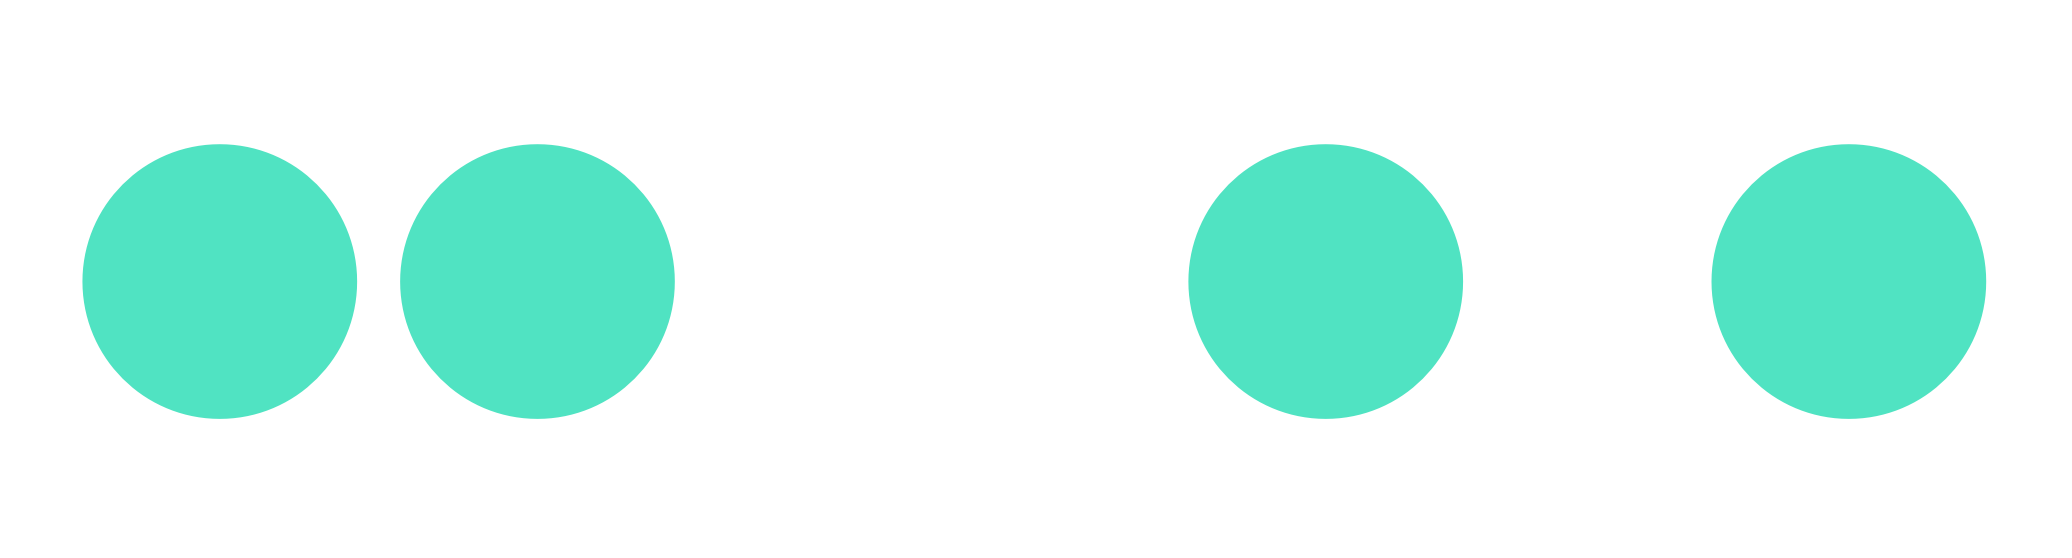 Two groups of circles